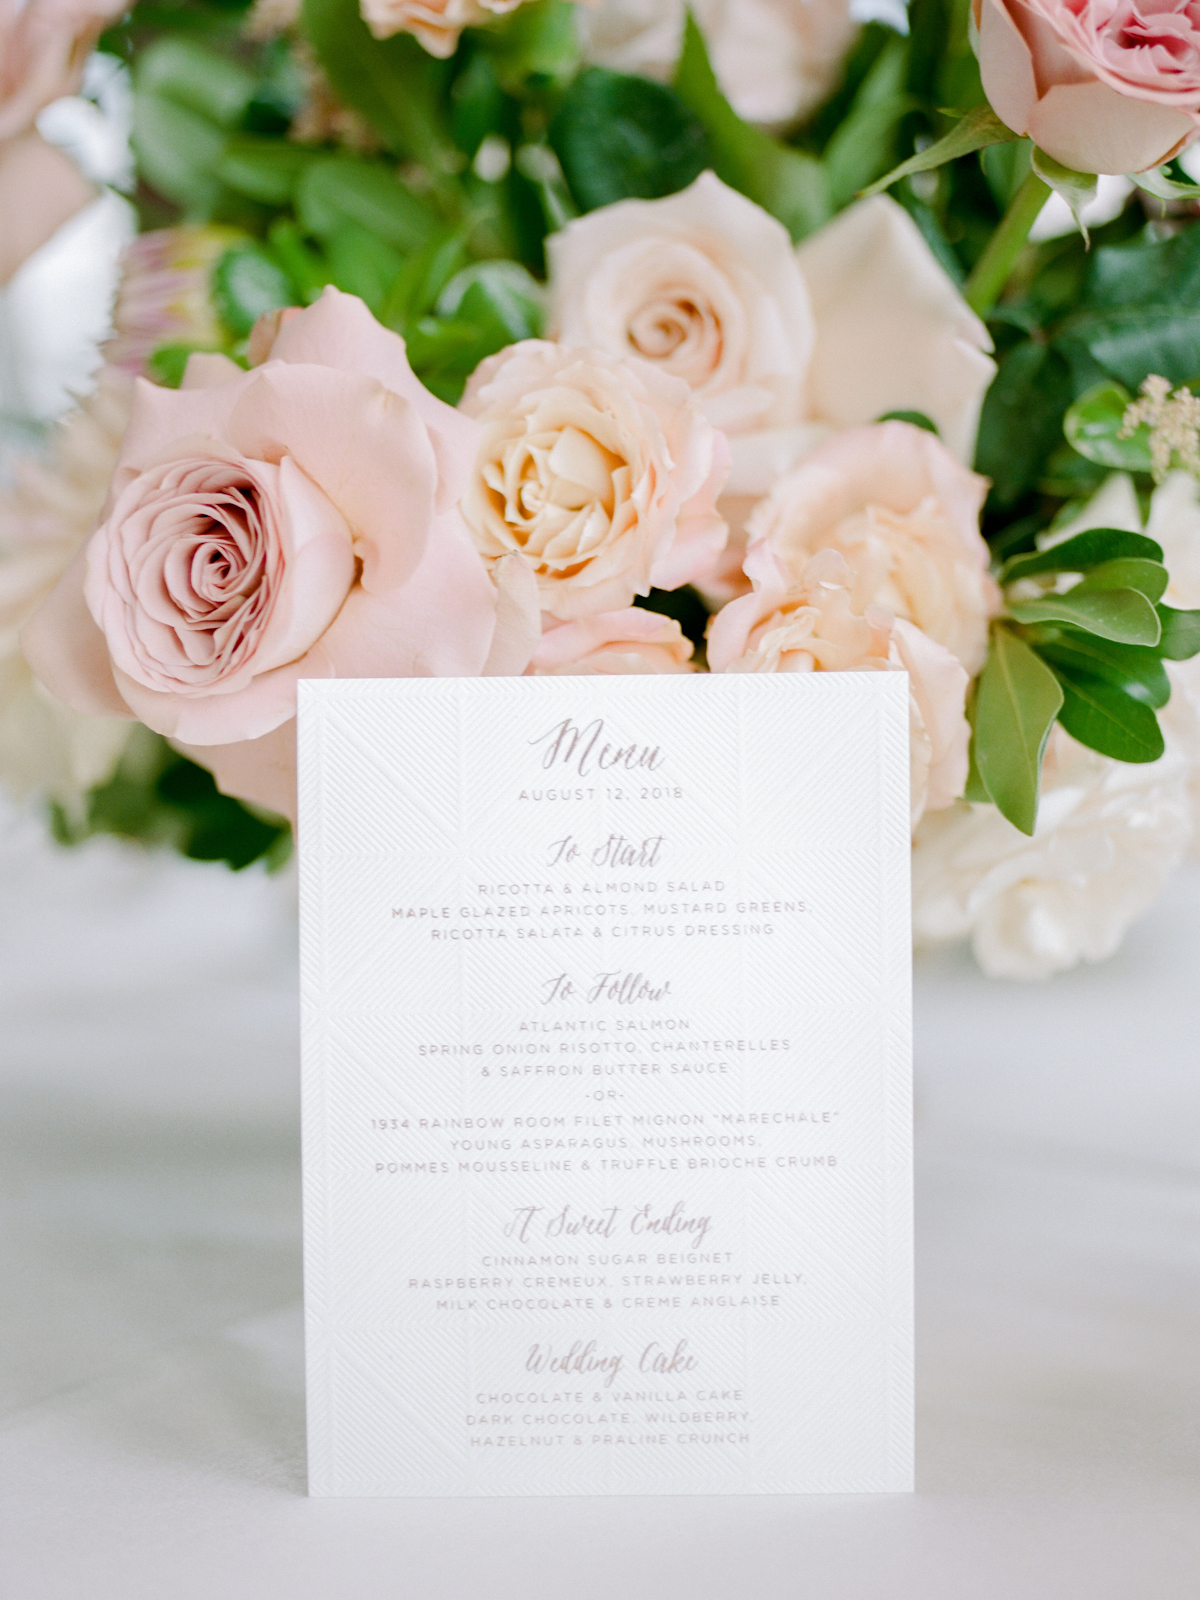 Rainbow Room Wedding, planner Ang Weddings and Events, photography Heather Waraksa, florals Poppies and Posies, menu Bella Figura